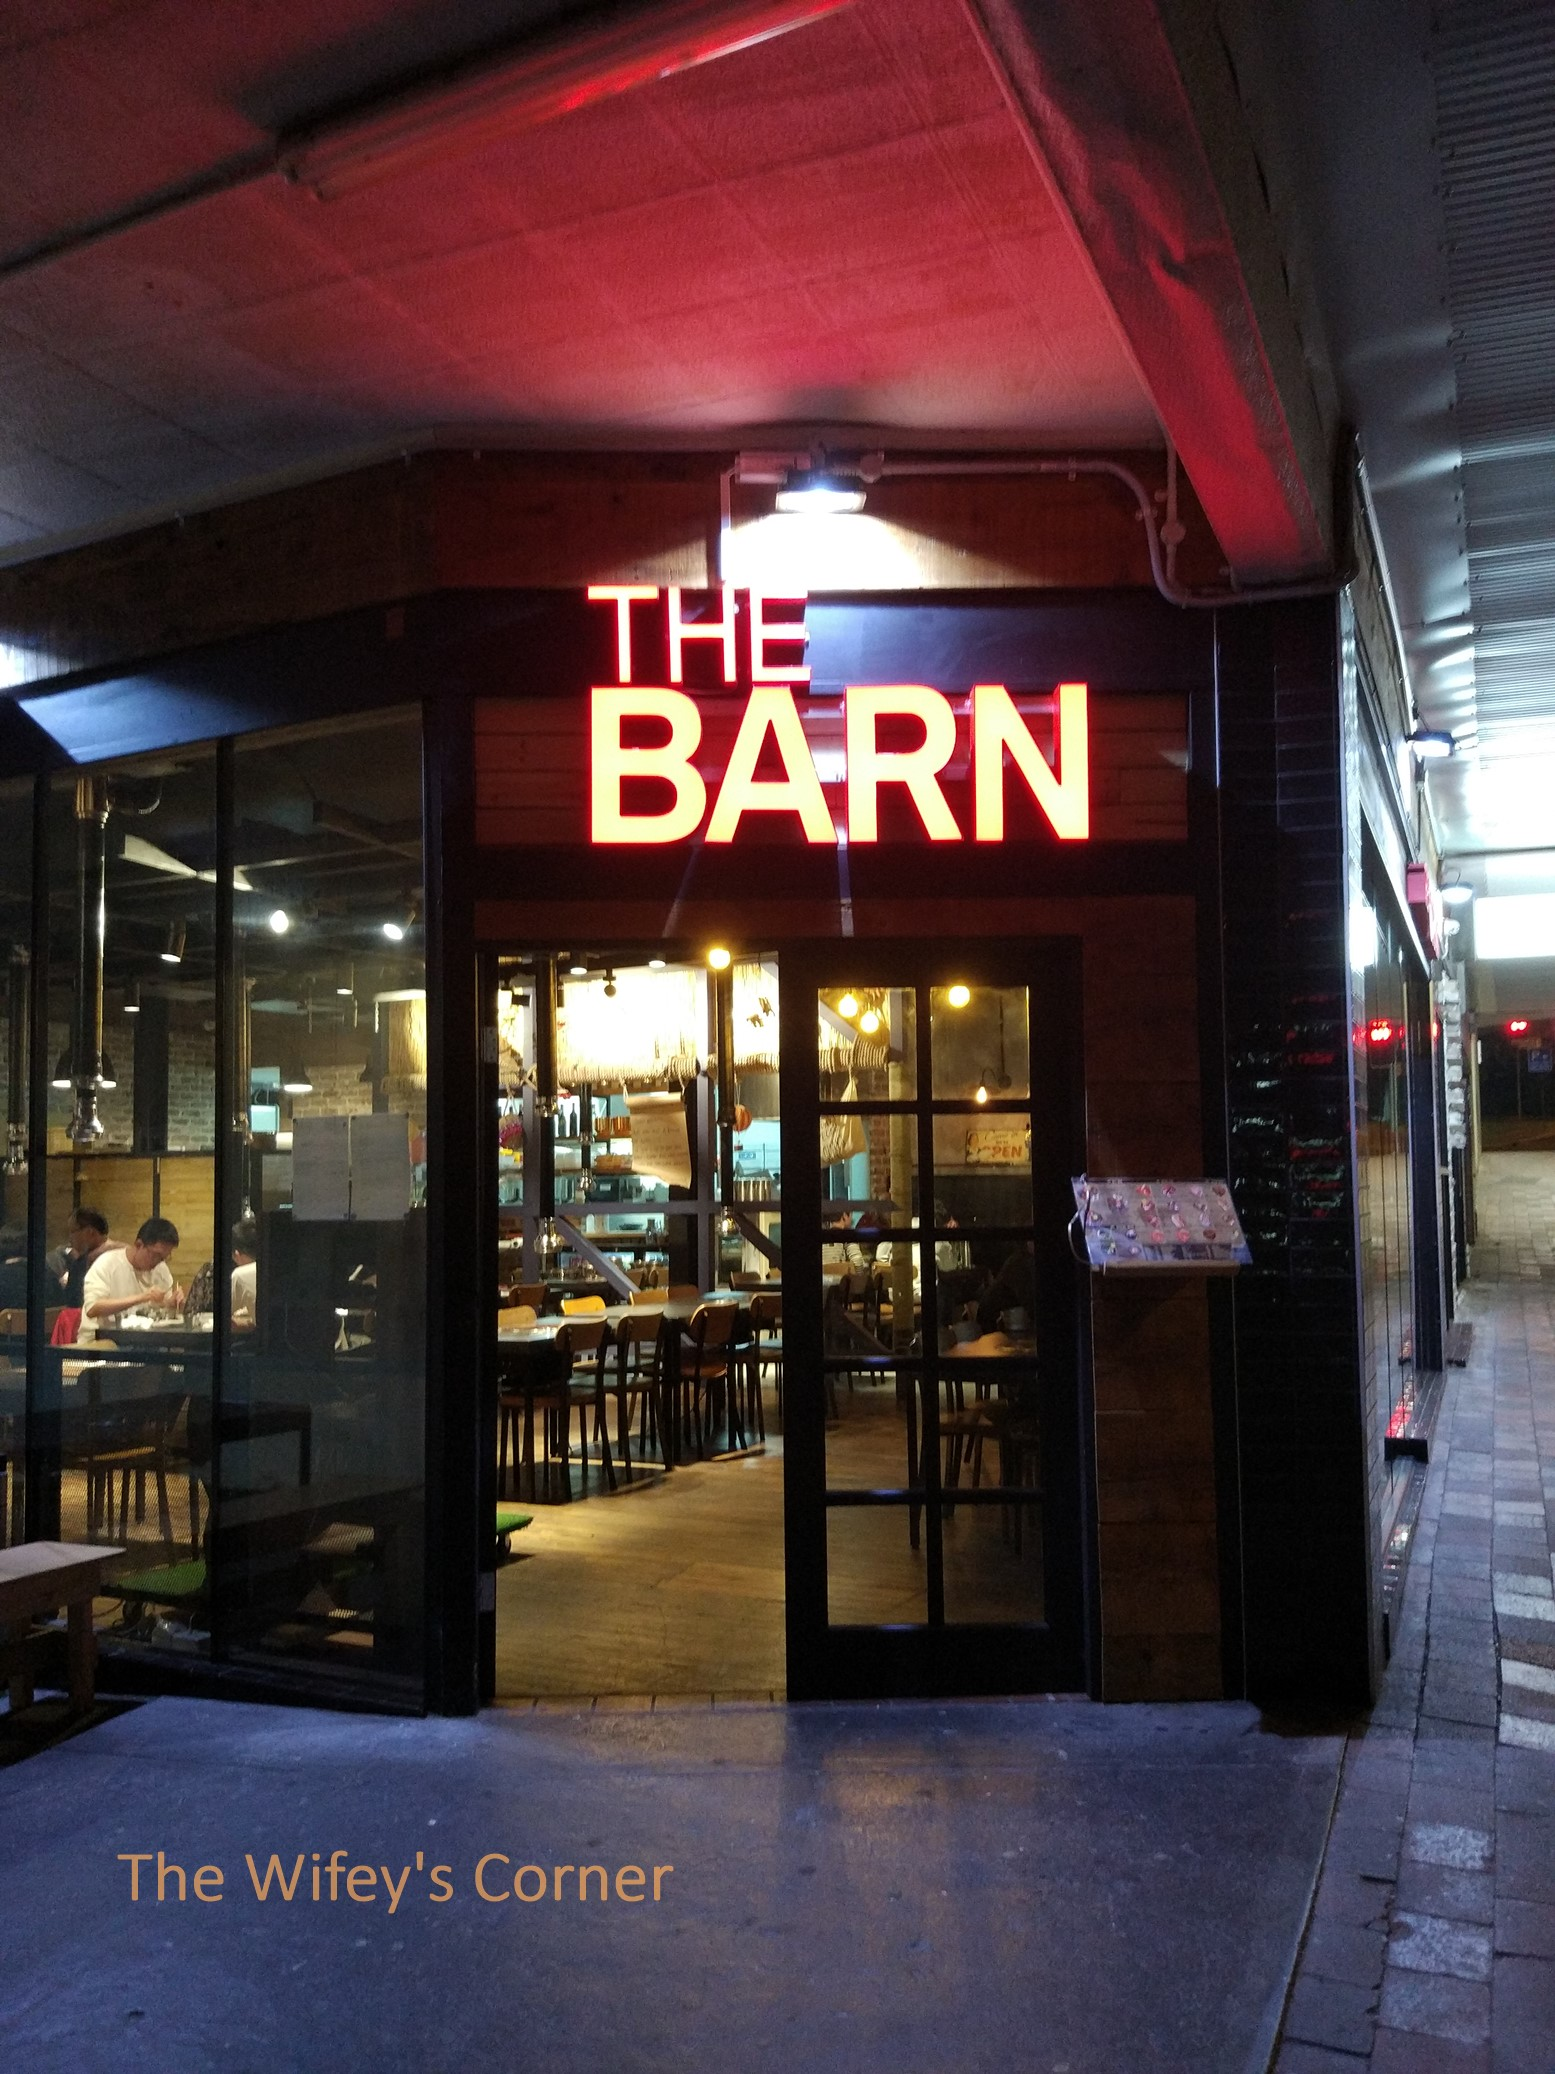 The Barn, West Ryde